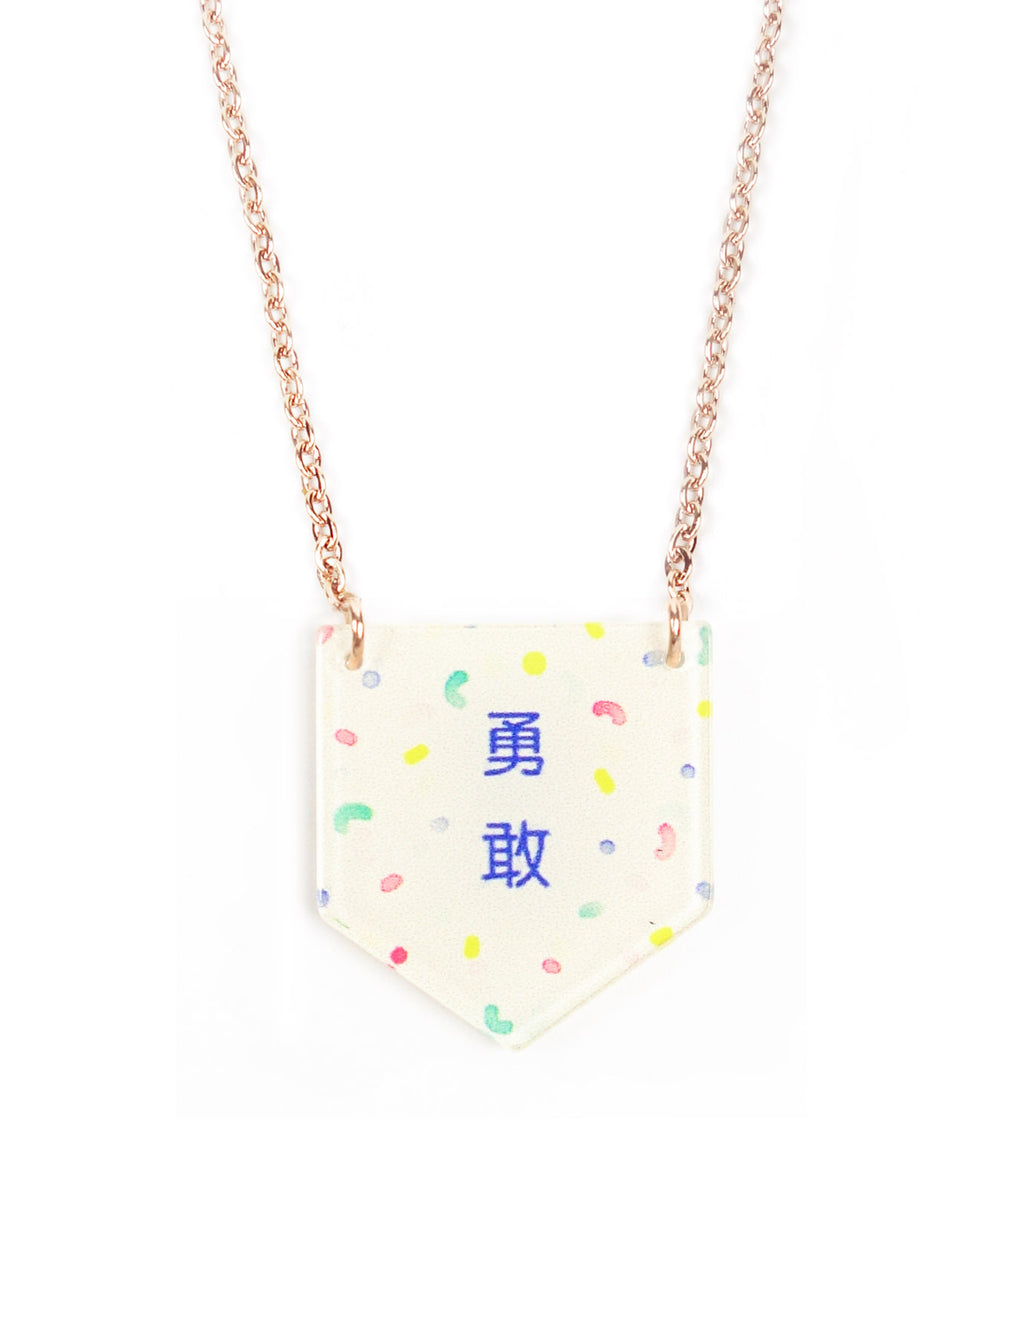 Motivational Little Message Necklace - 勇敢